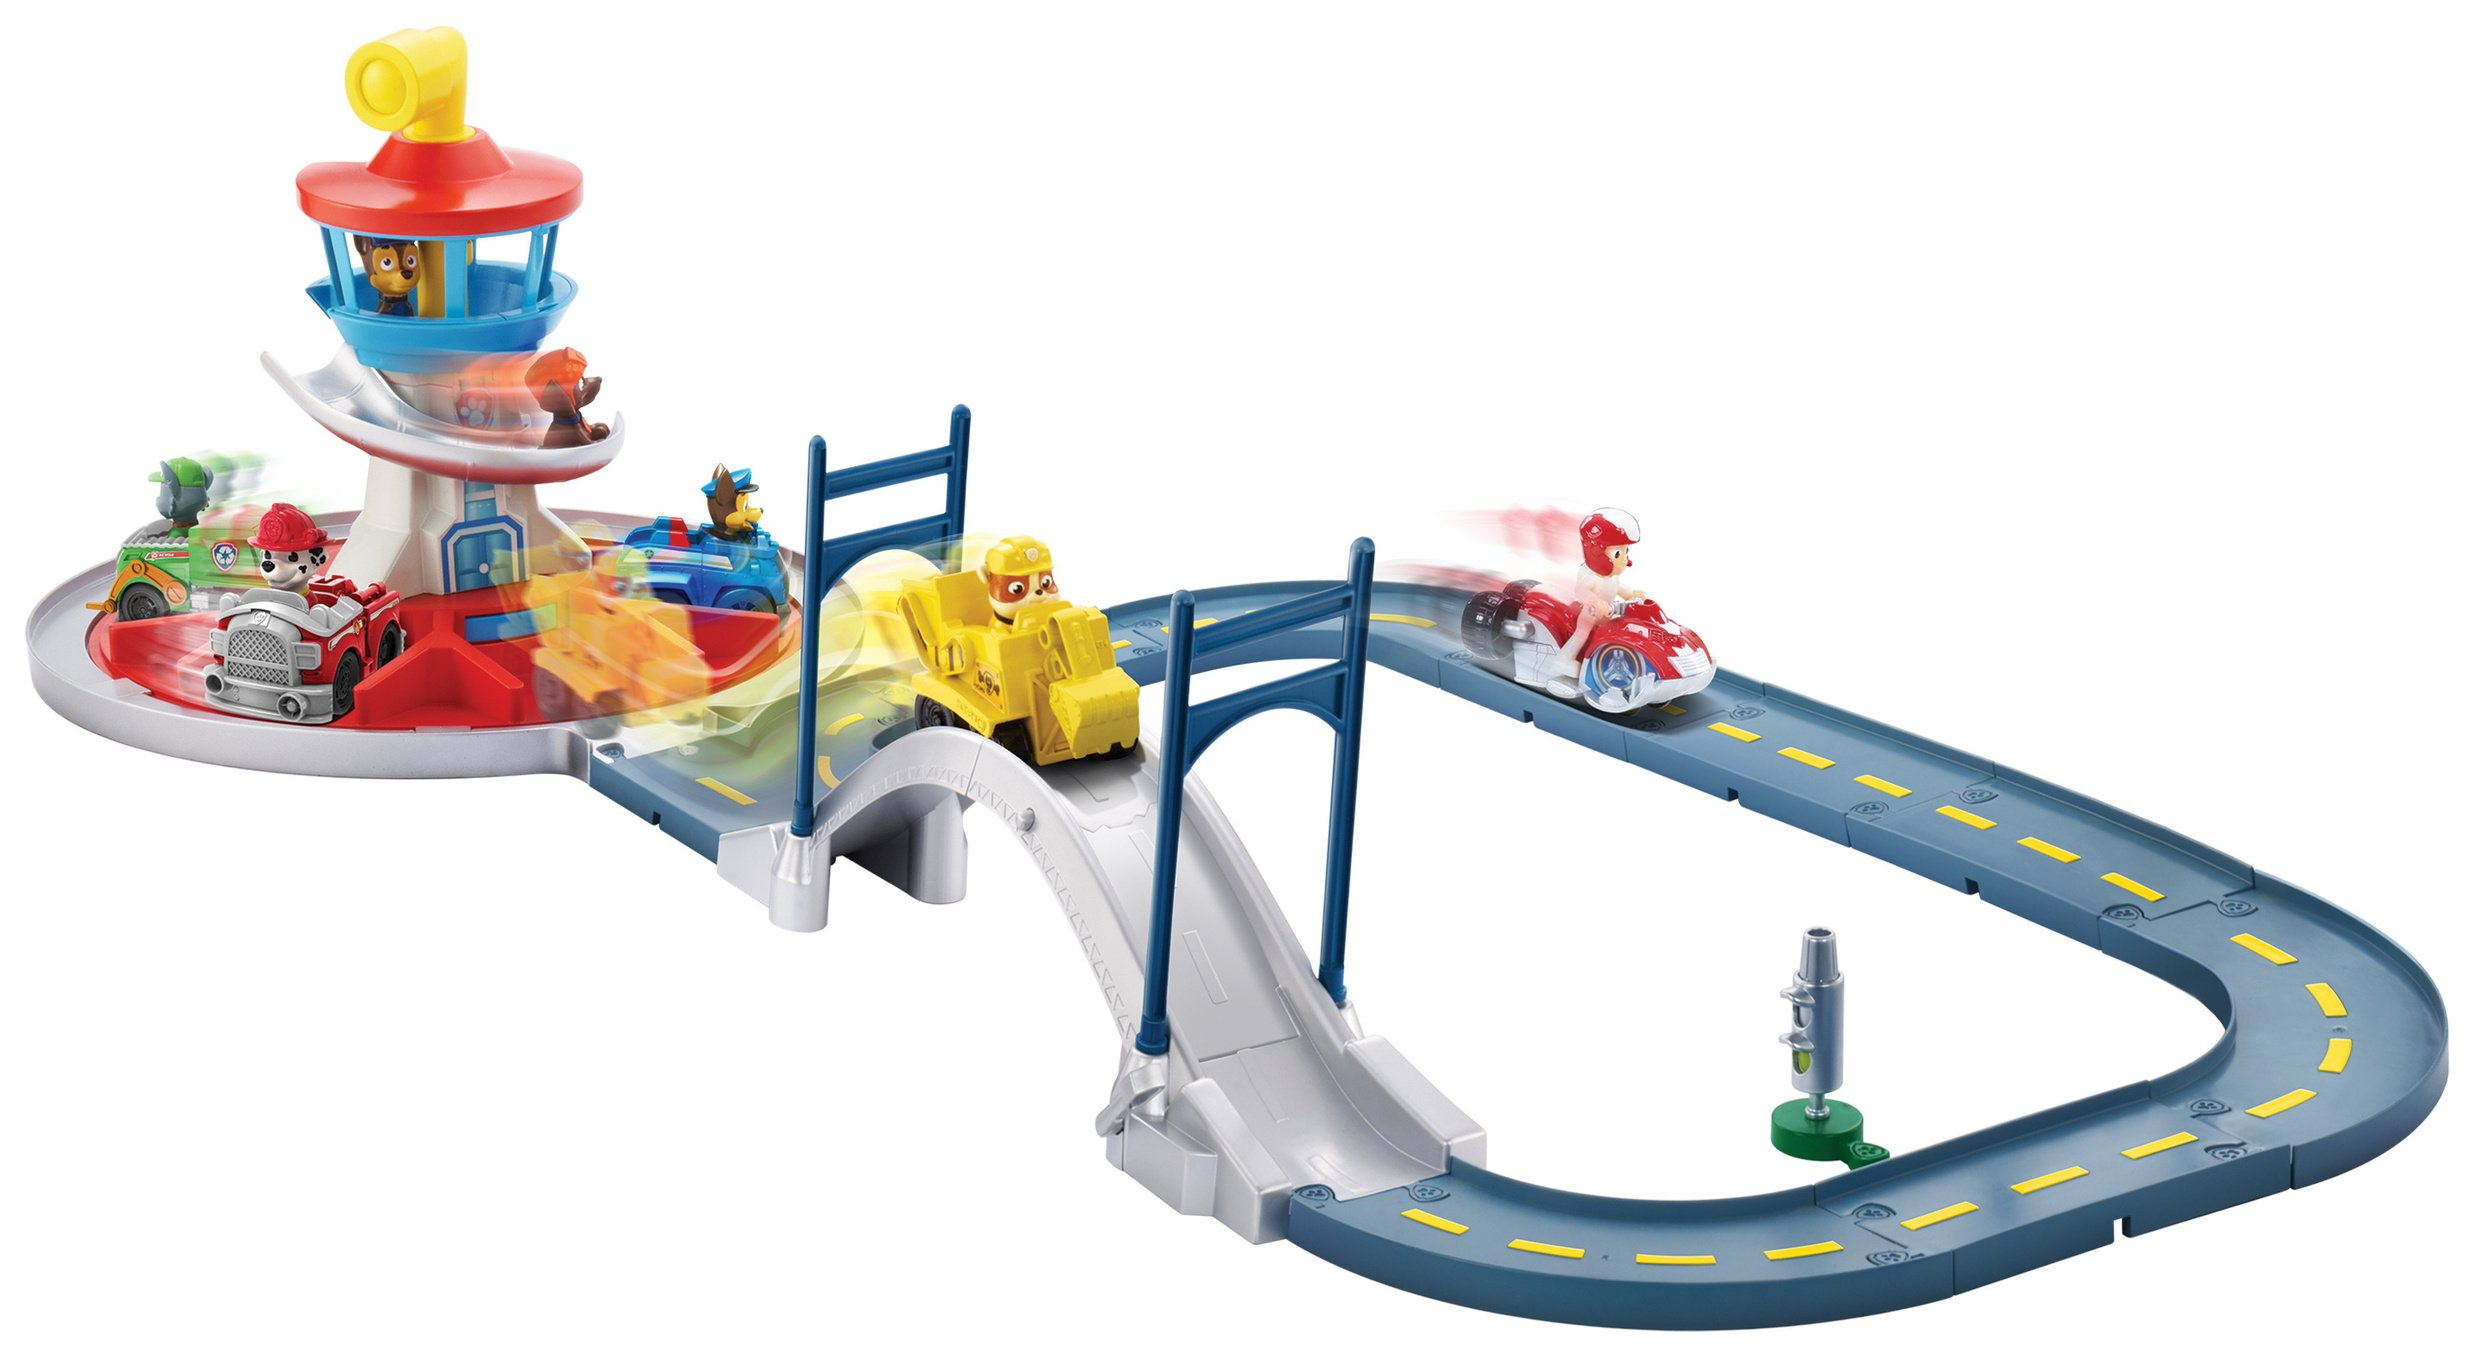 PAW Patrol Launch n' Roll Lookout Tower Track Set.